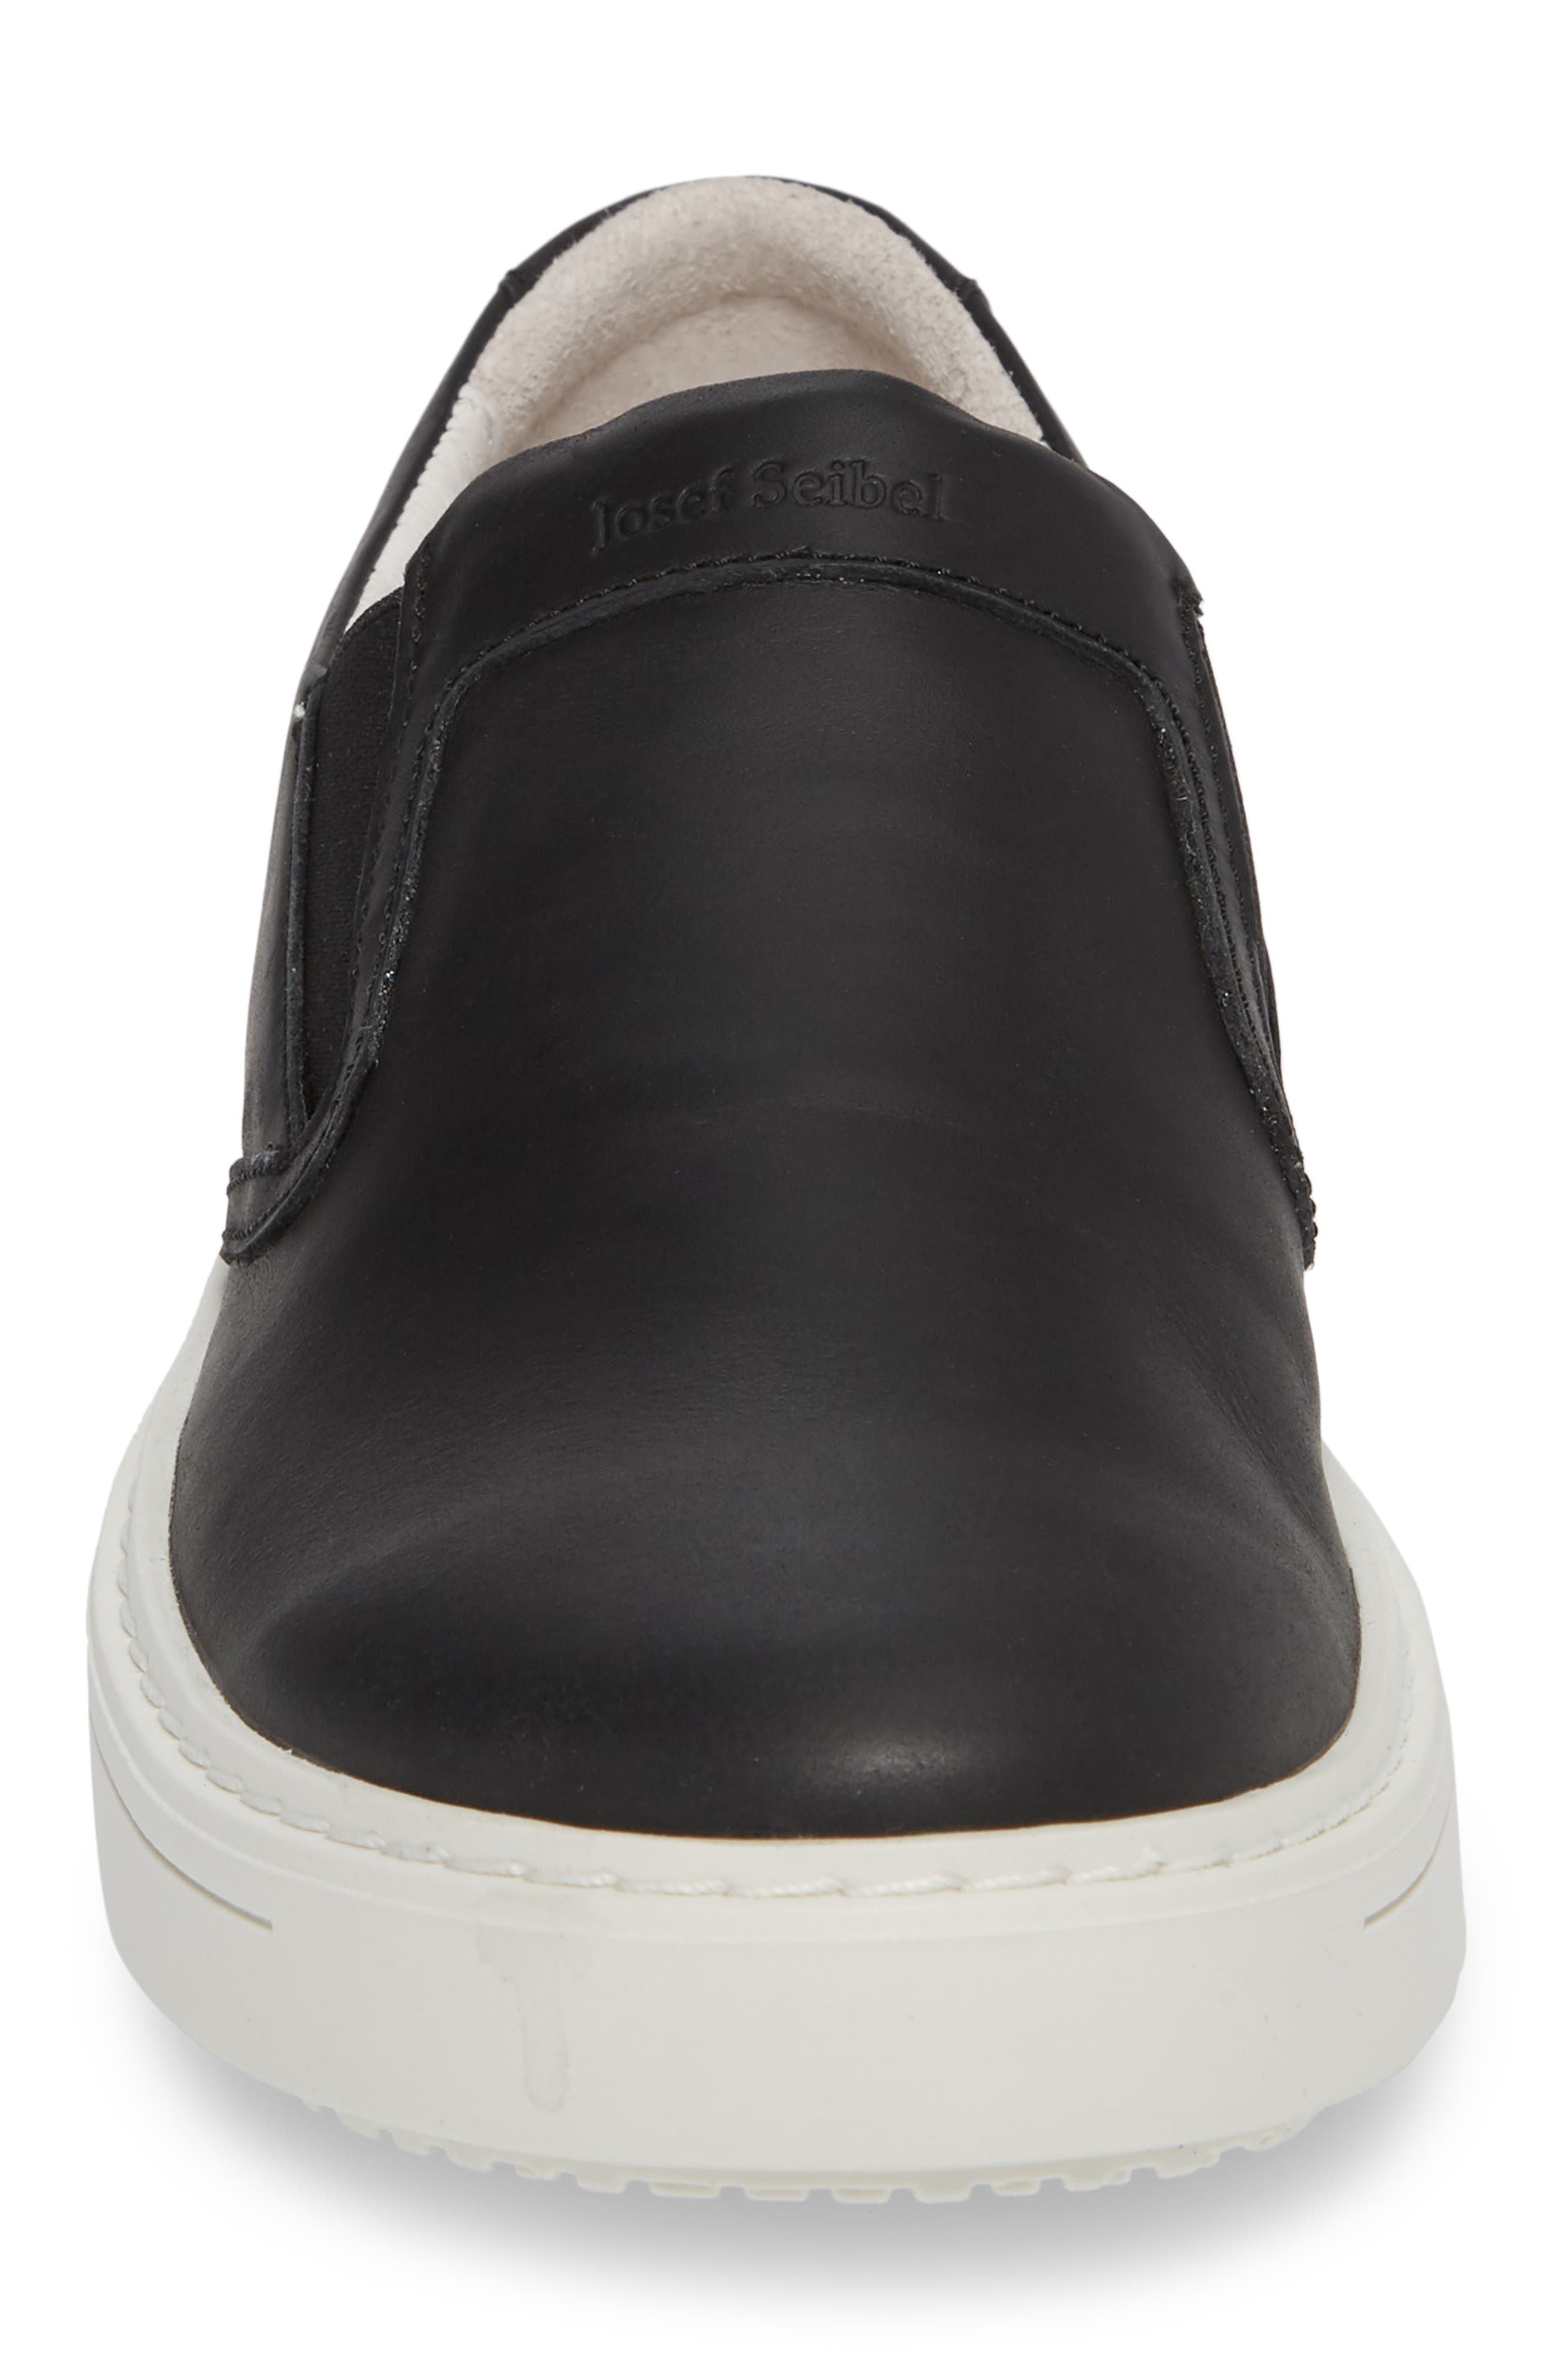 Quentin 15 Slip-On Sneaker,                             Alternate thumbnail 4, color,                             Black Leather